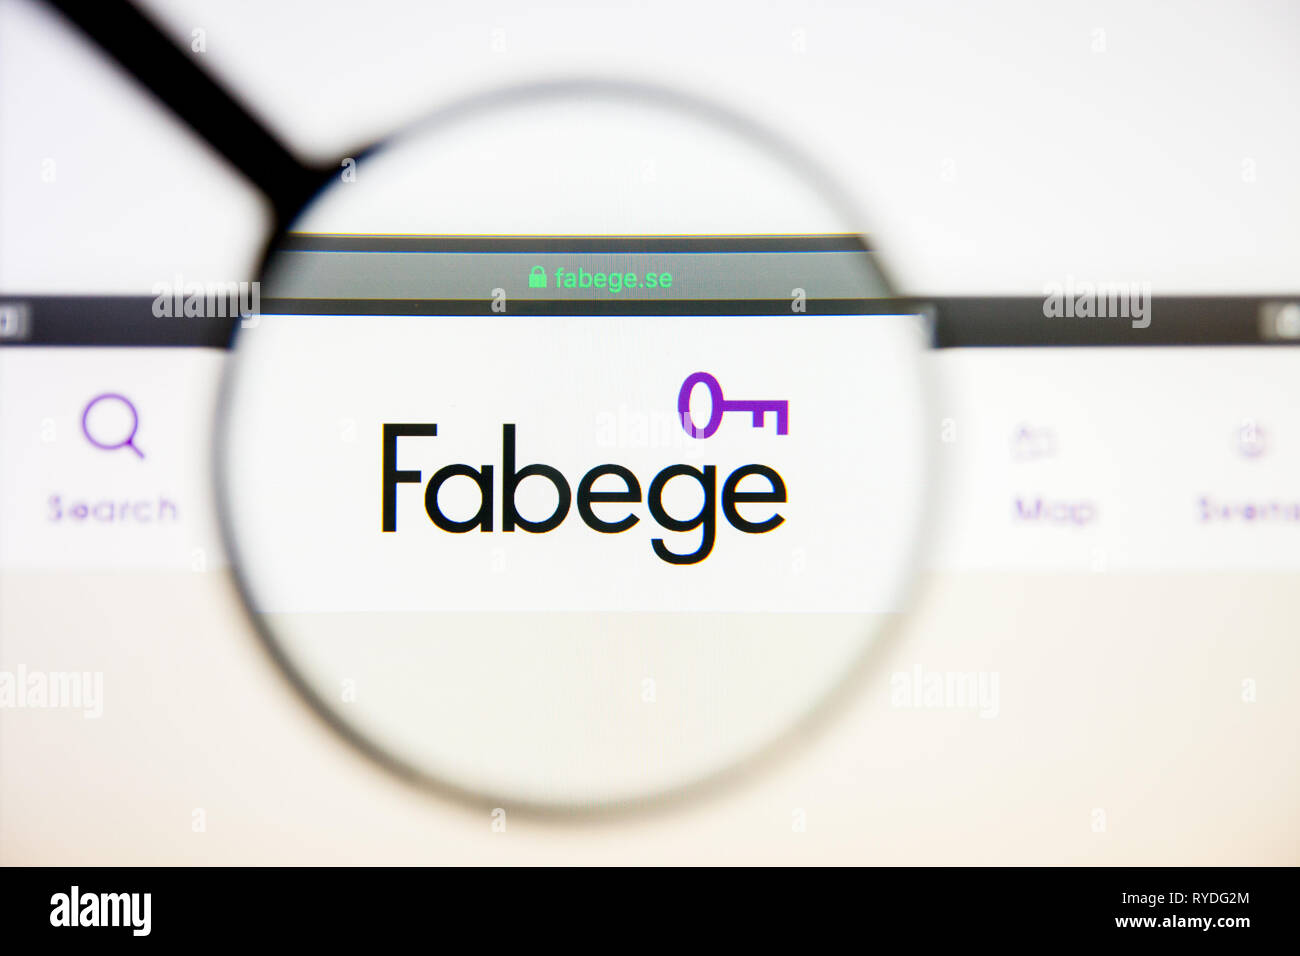 Los Angeles, California, USA - 5 March 2019: Fabege AB website homepage. Fabege AB logo visible on display screen, Illustrative Editorial - Stock Image